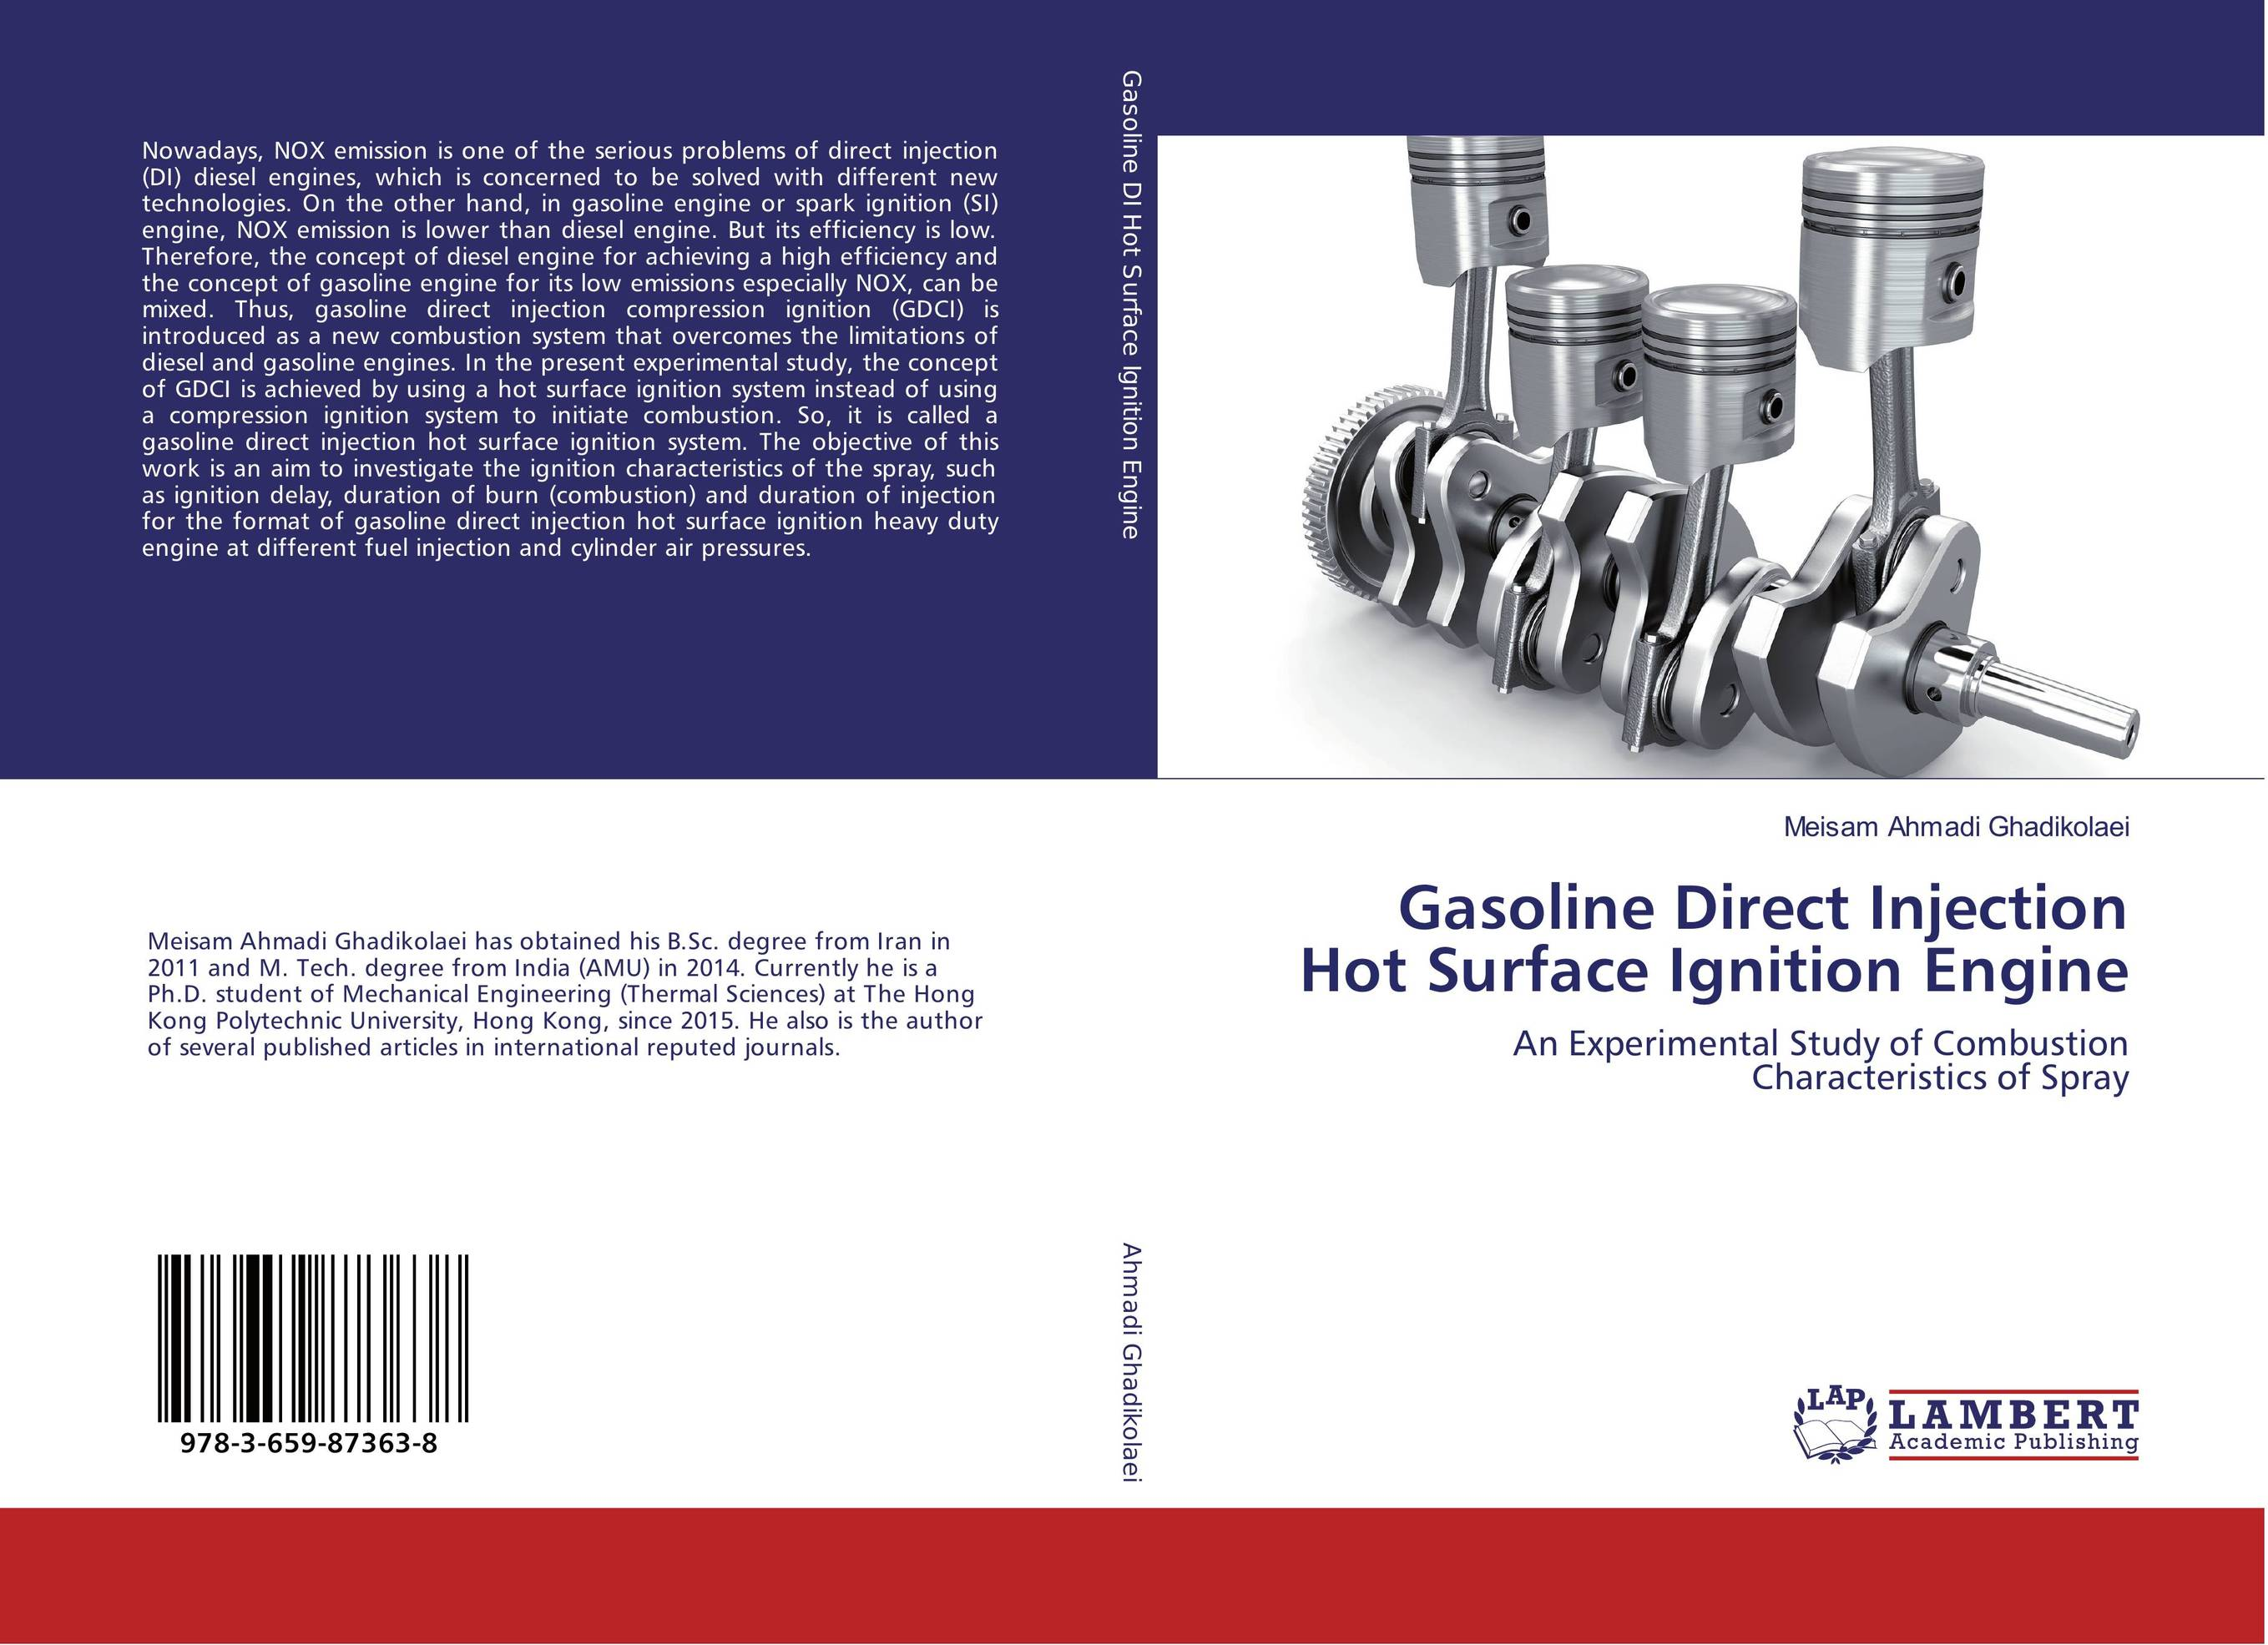 Gasoline Direct Injection Hot Surface Ignition Engine